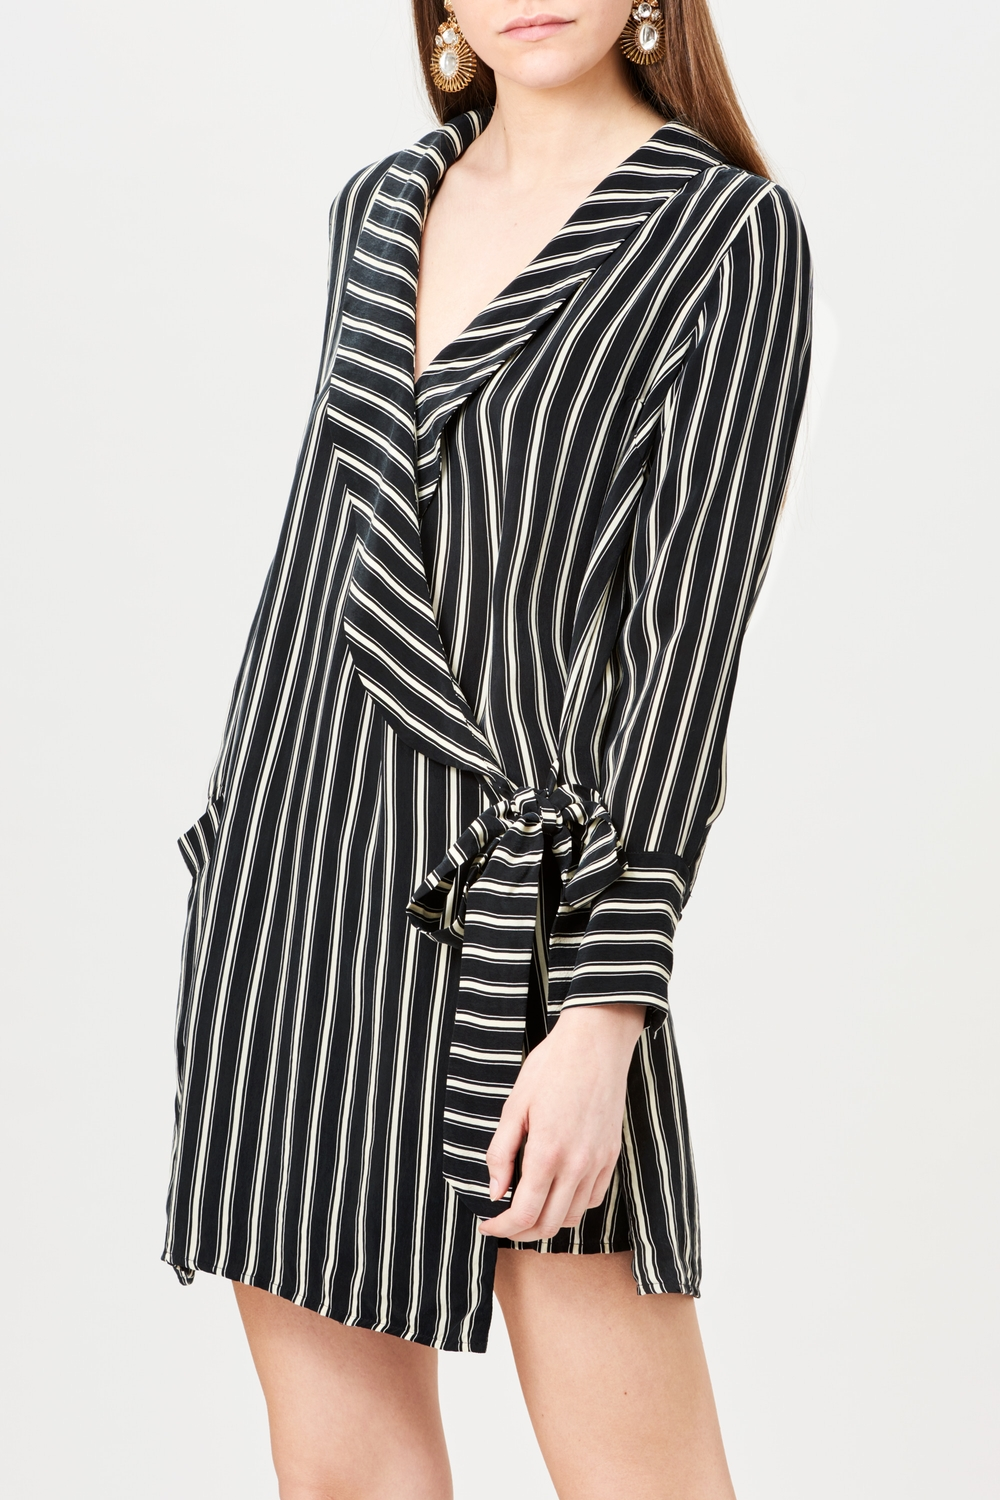 Billie & Me Eugine Dress Triple Striped